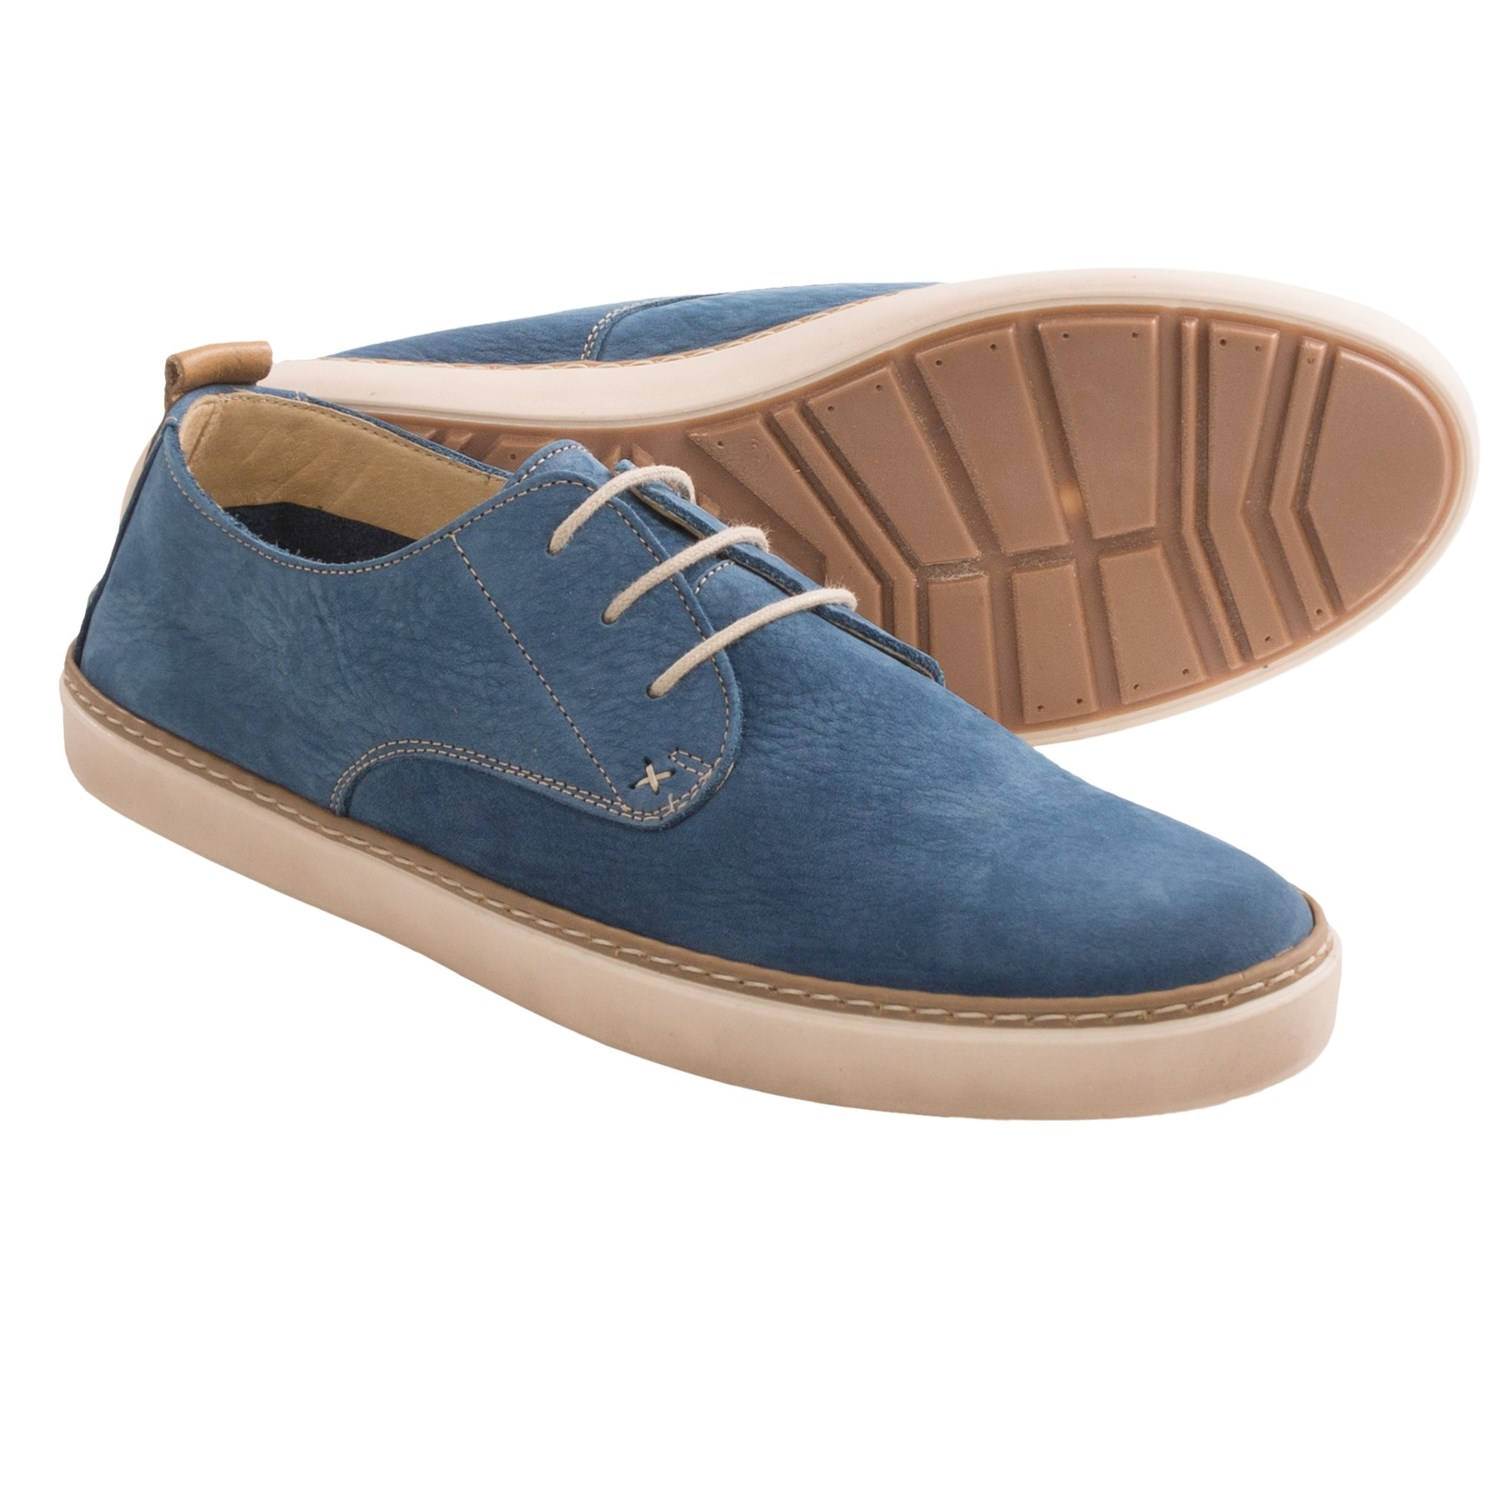 Wolverine Luis Leather Sneakers (For Men) in Navy